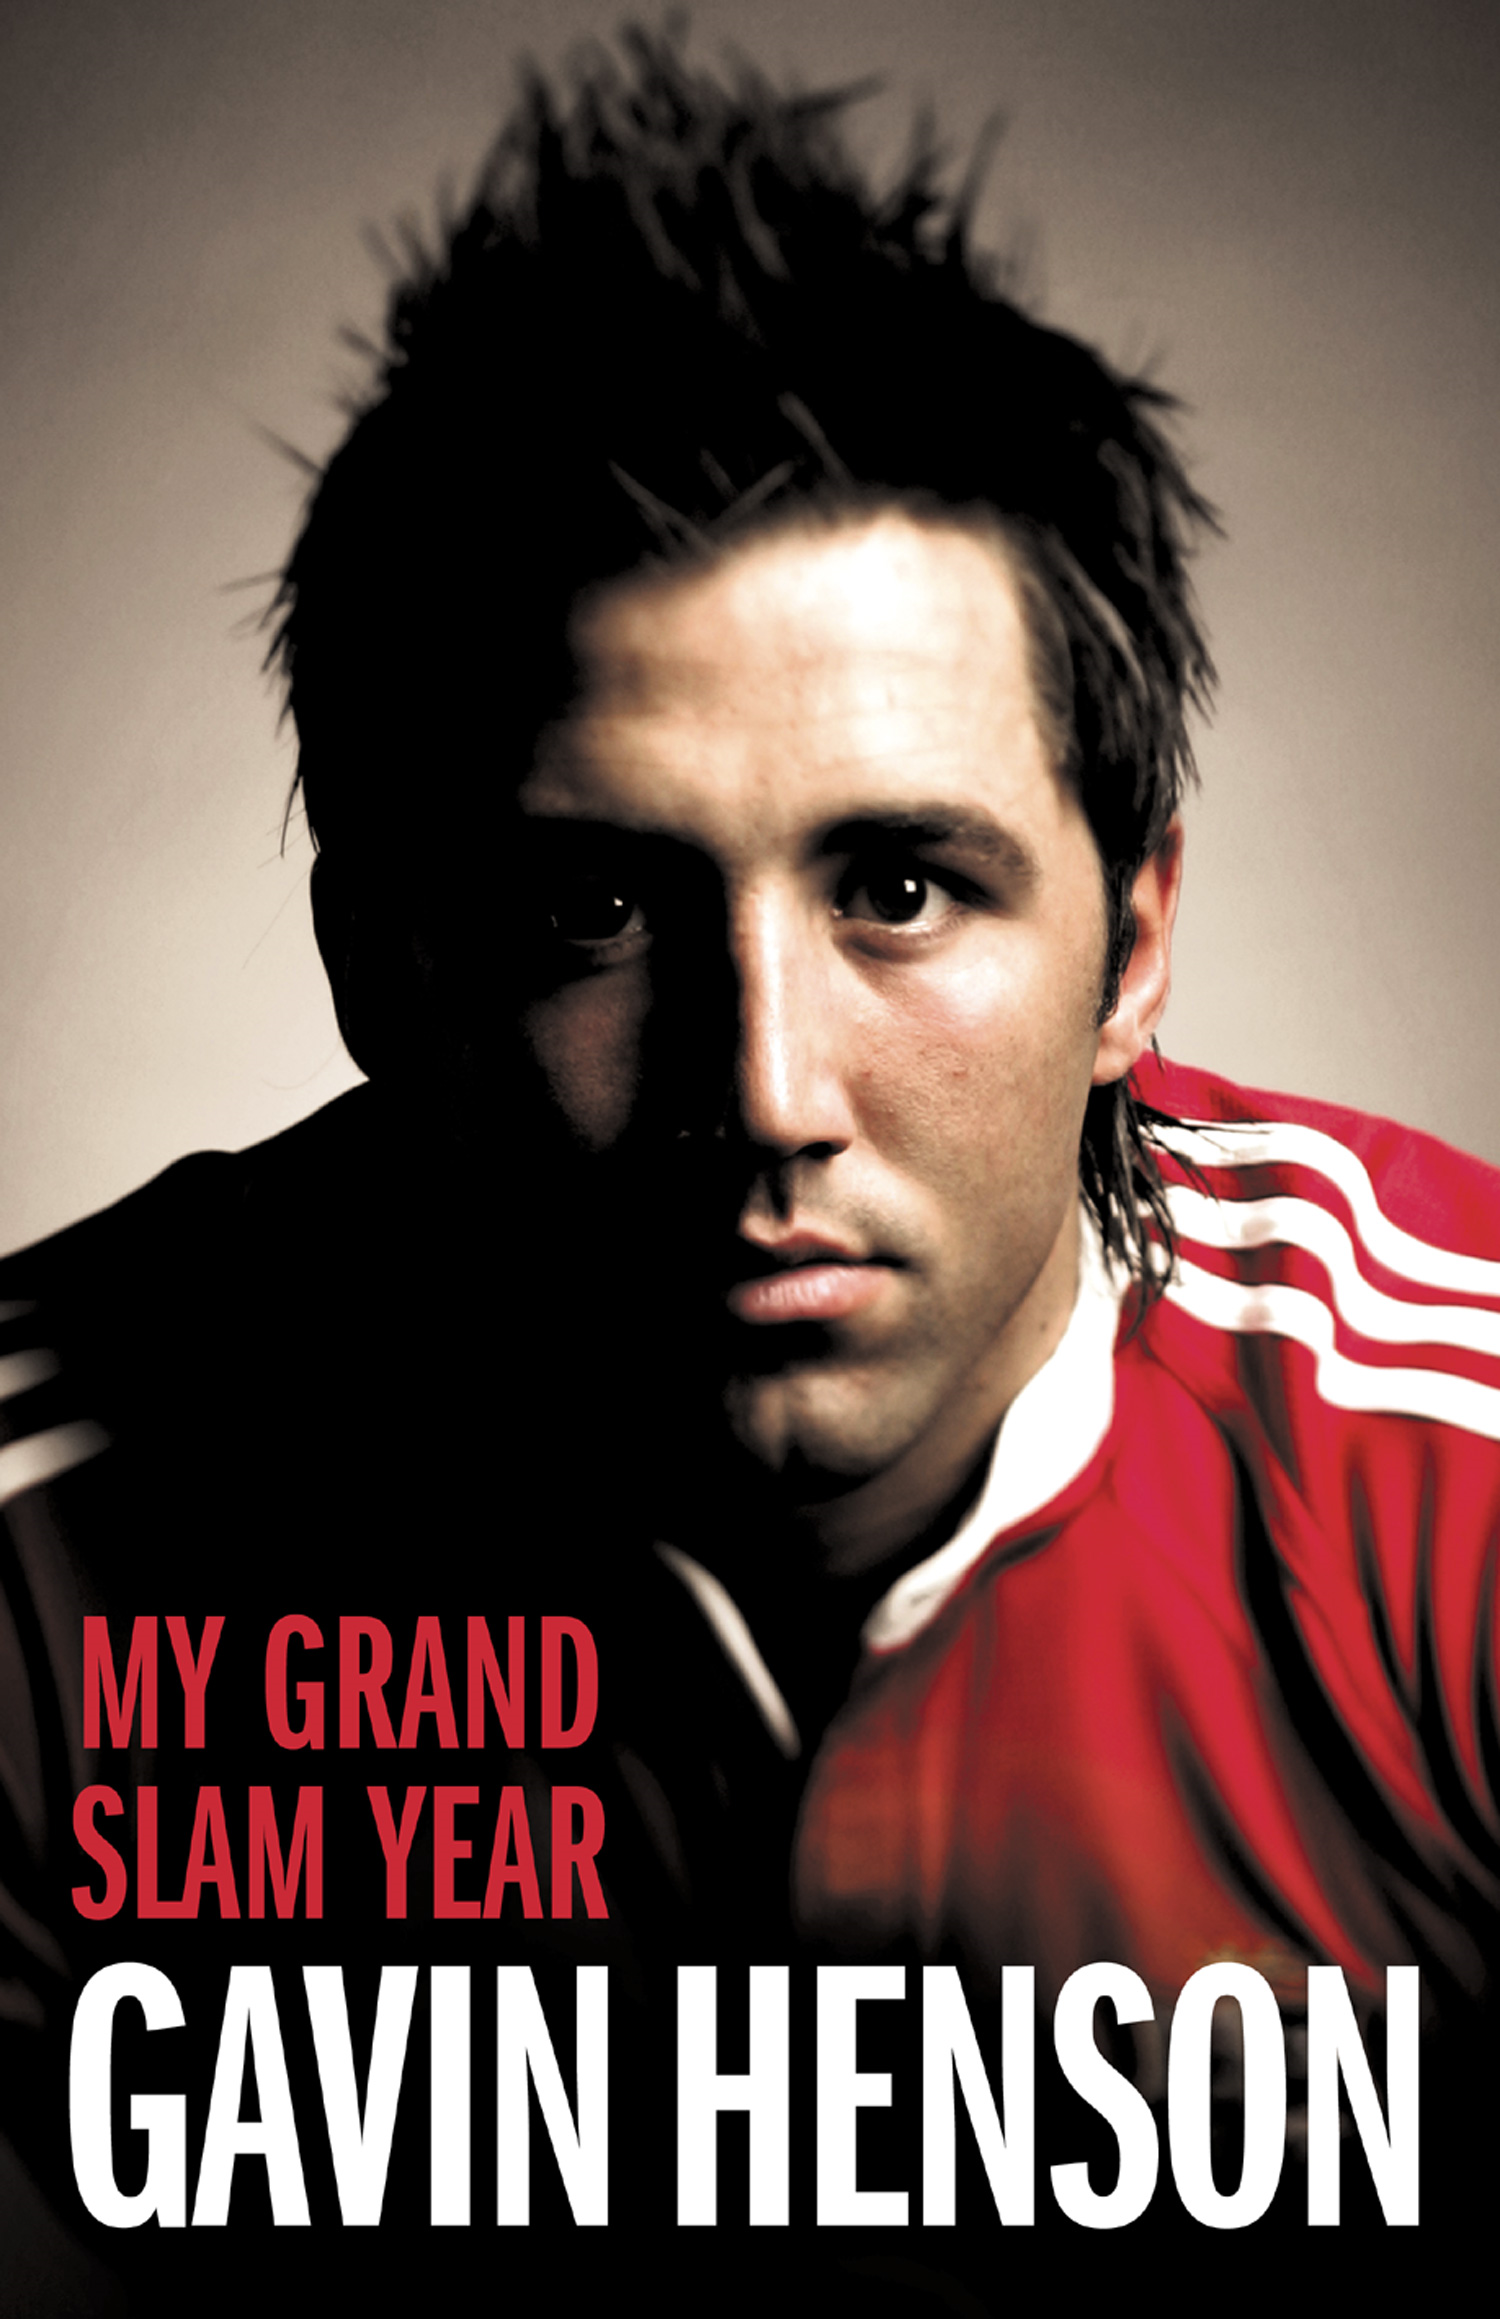 Gavin Henson: My Grand Slam Year